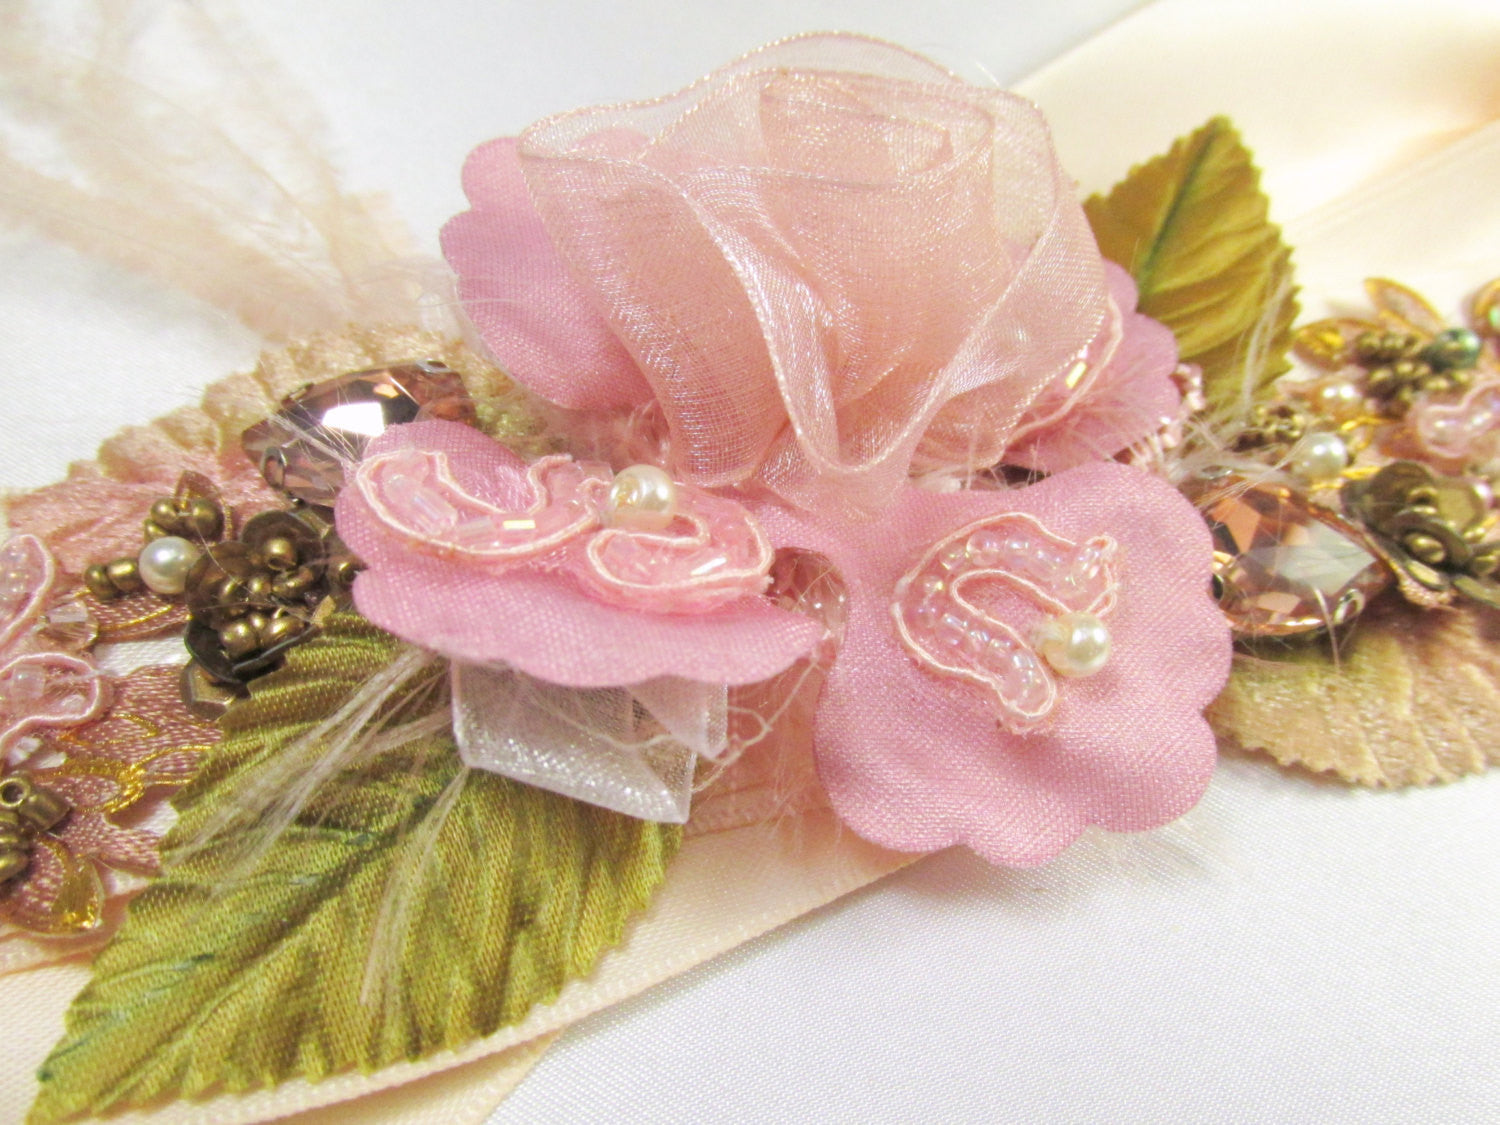 Cottage Rose Mauve, Pink, Peach Blush and Olive Green Beaded Bridal Sash - Odyssey Creations